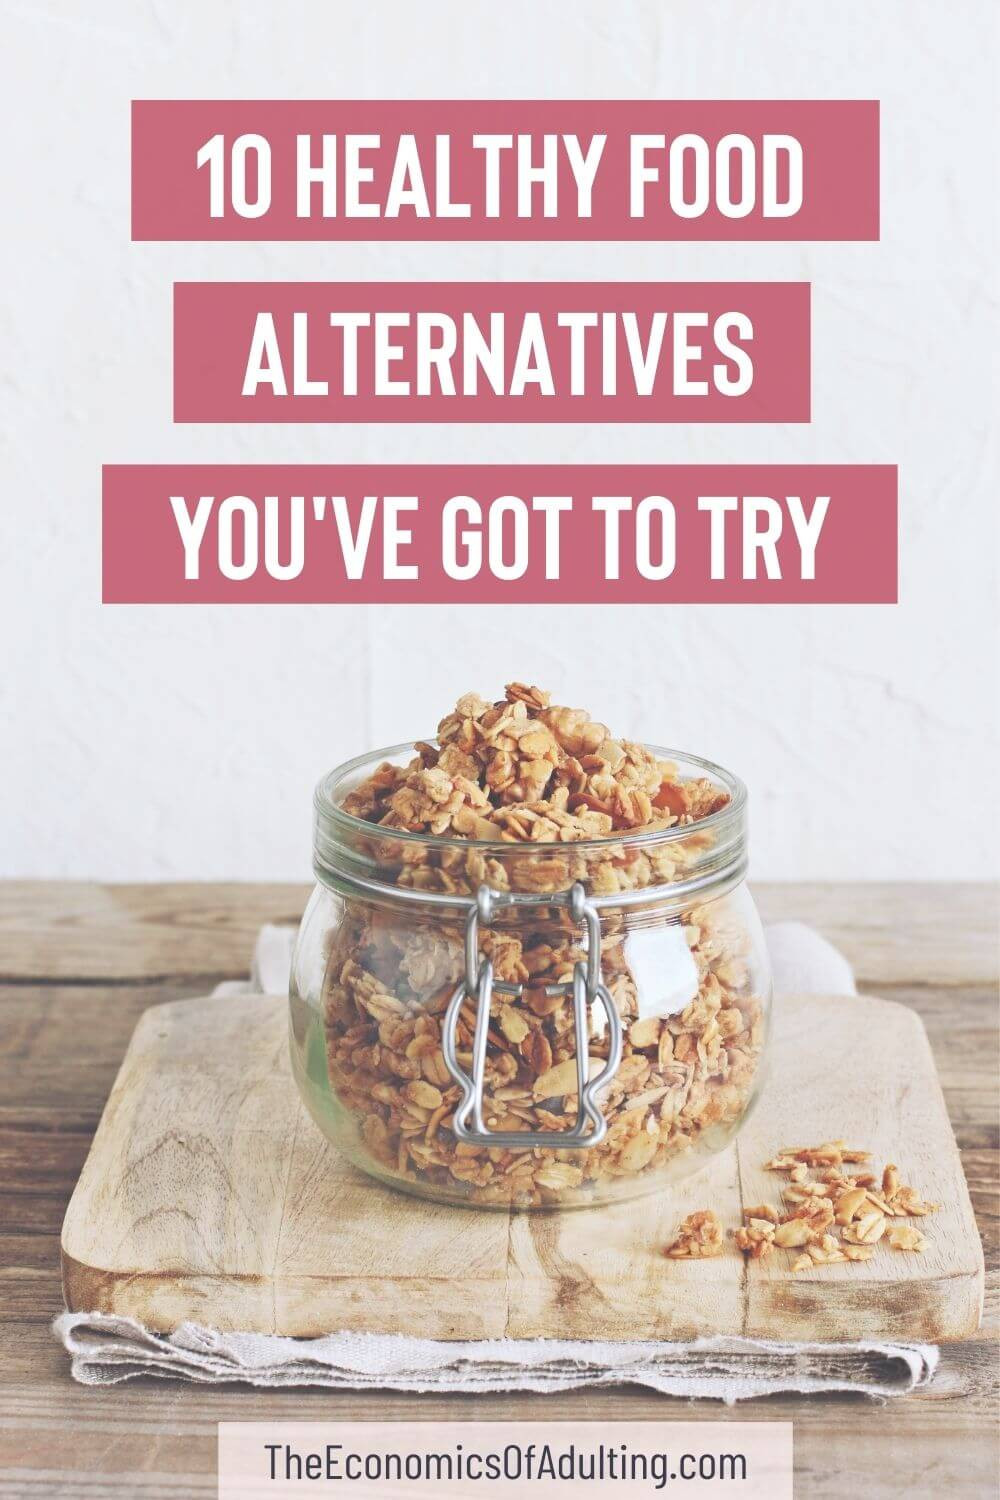 An image of a jar of homemade granola with the headline '10 Healthy Food Alternatives You've Got To Try'